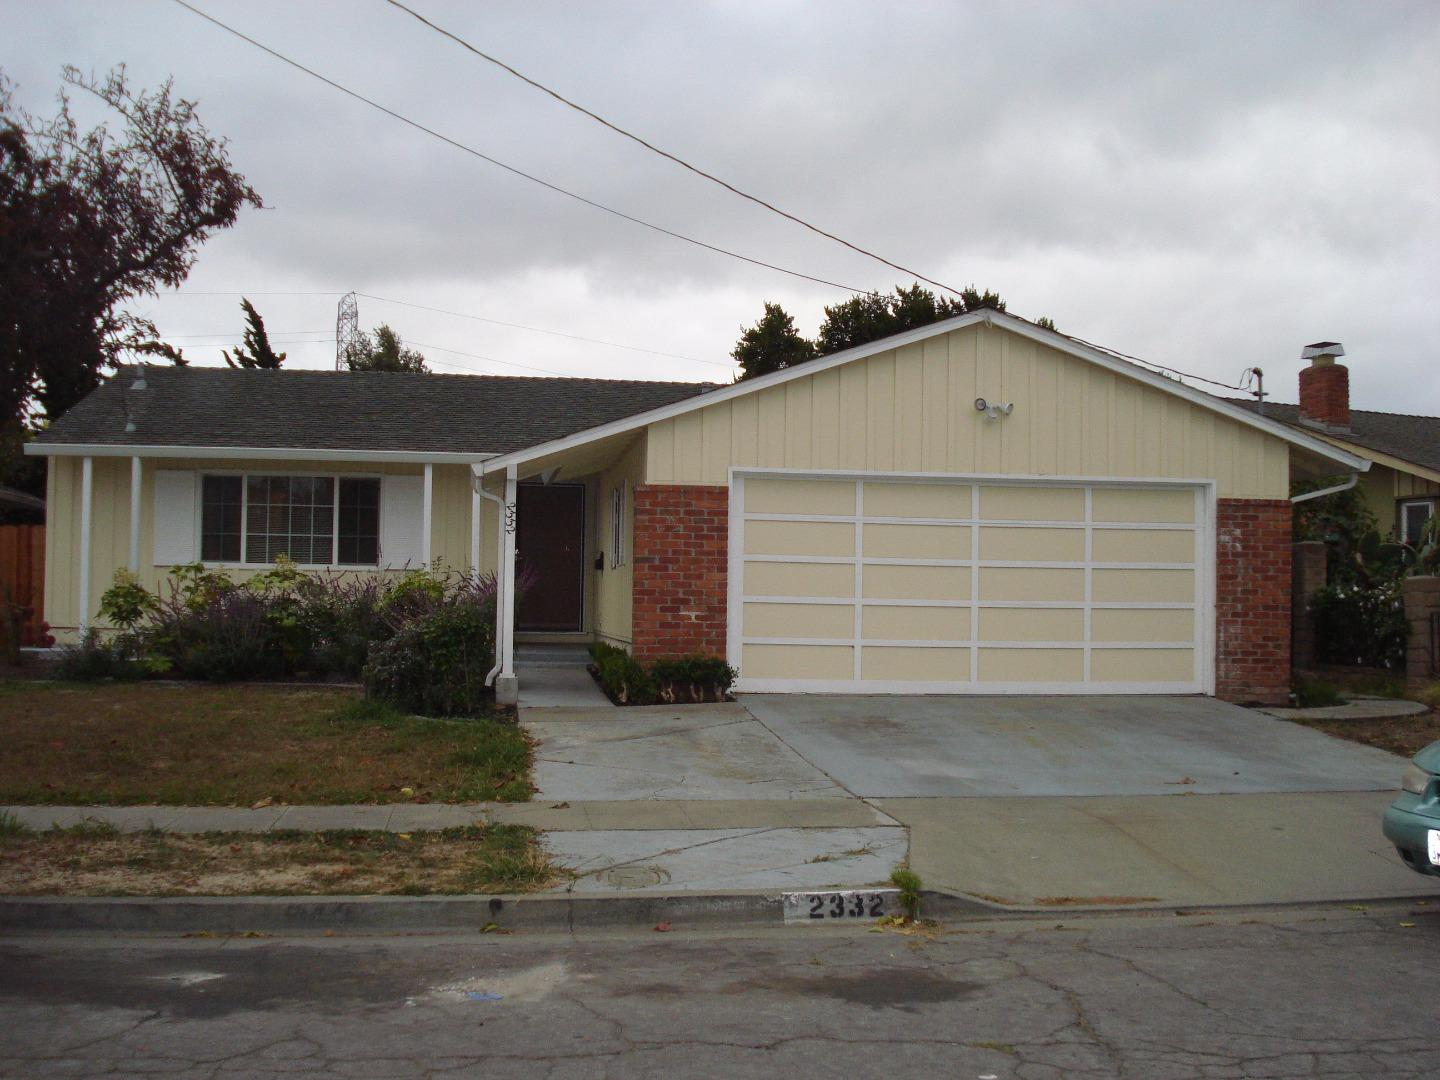 Single Family Home for Rent at 2332 Tallahassee 2332 Tallahassee Hayward, California 94545 United States